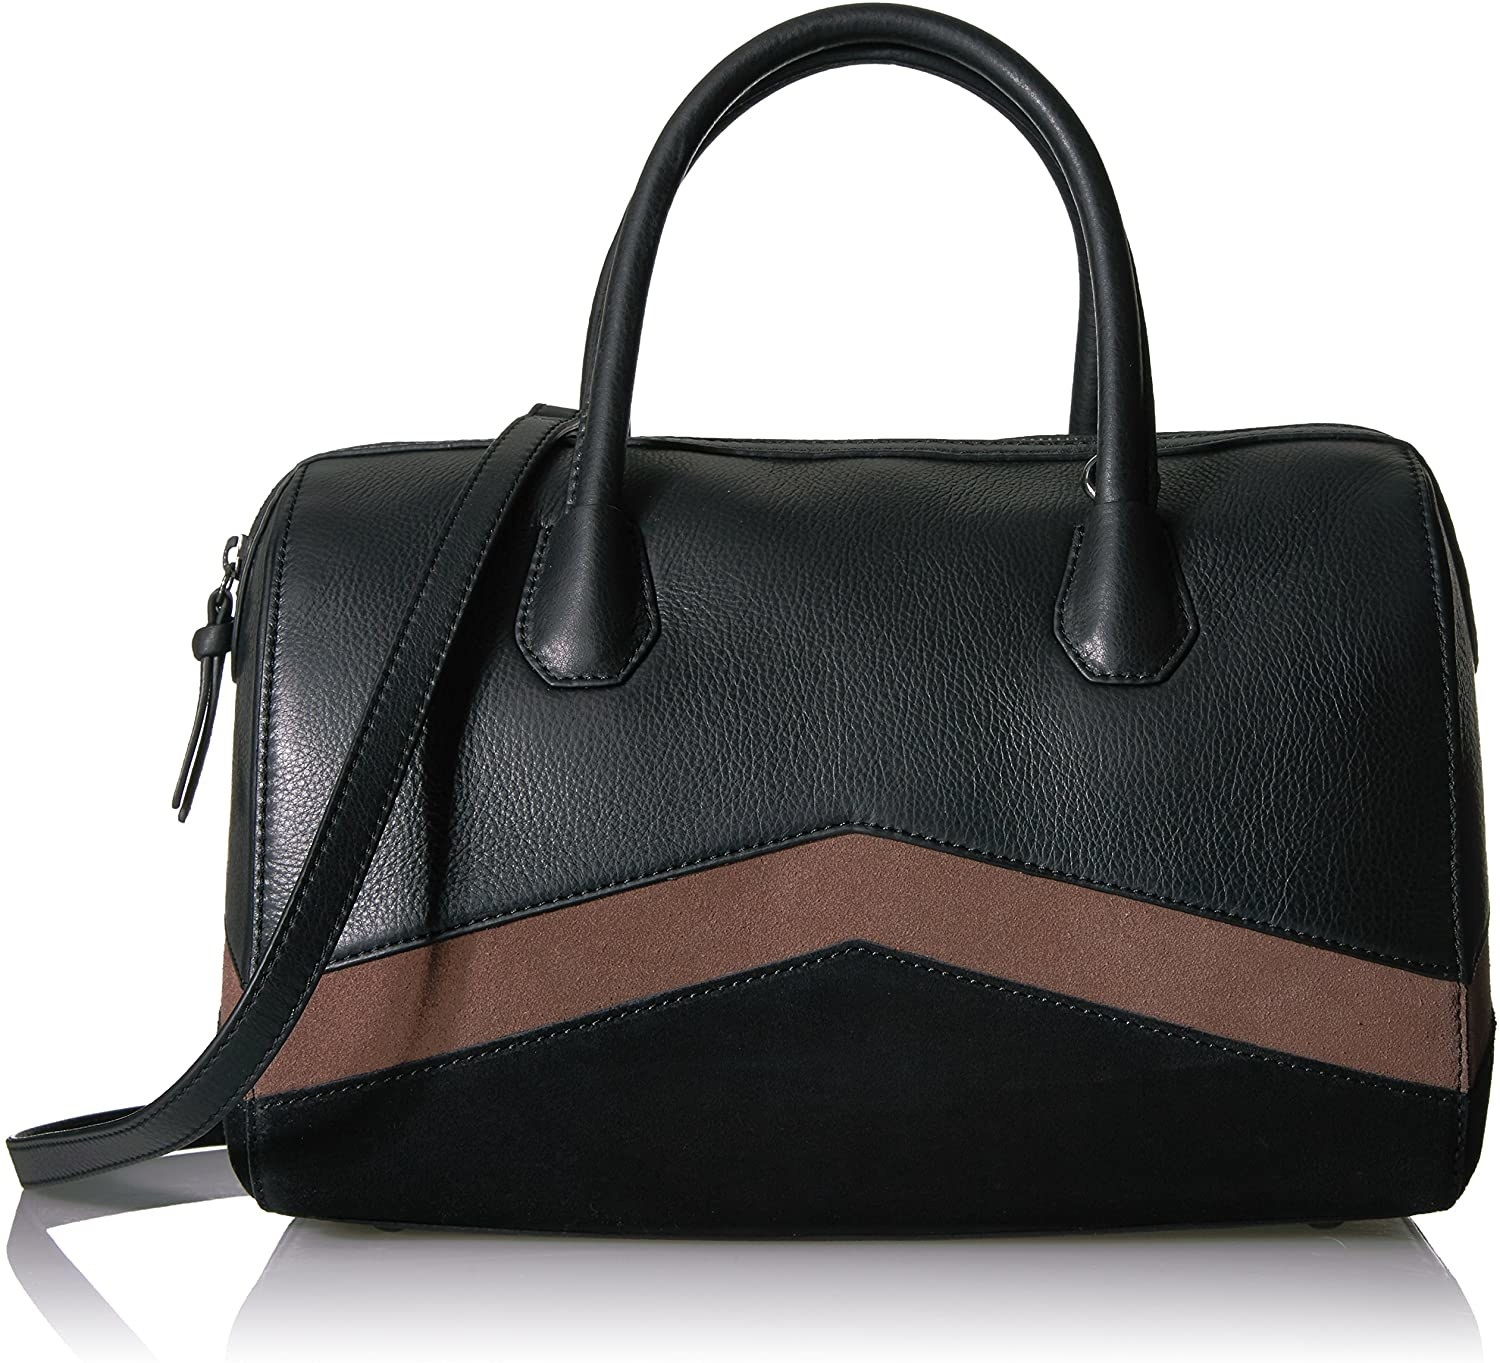 The black bowler bag with short handles and a long crossbody strap and a brown suede chevron stripe